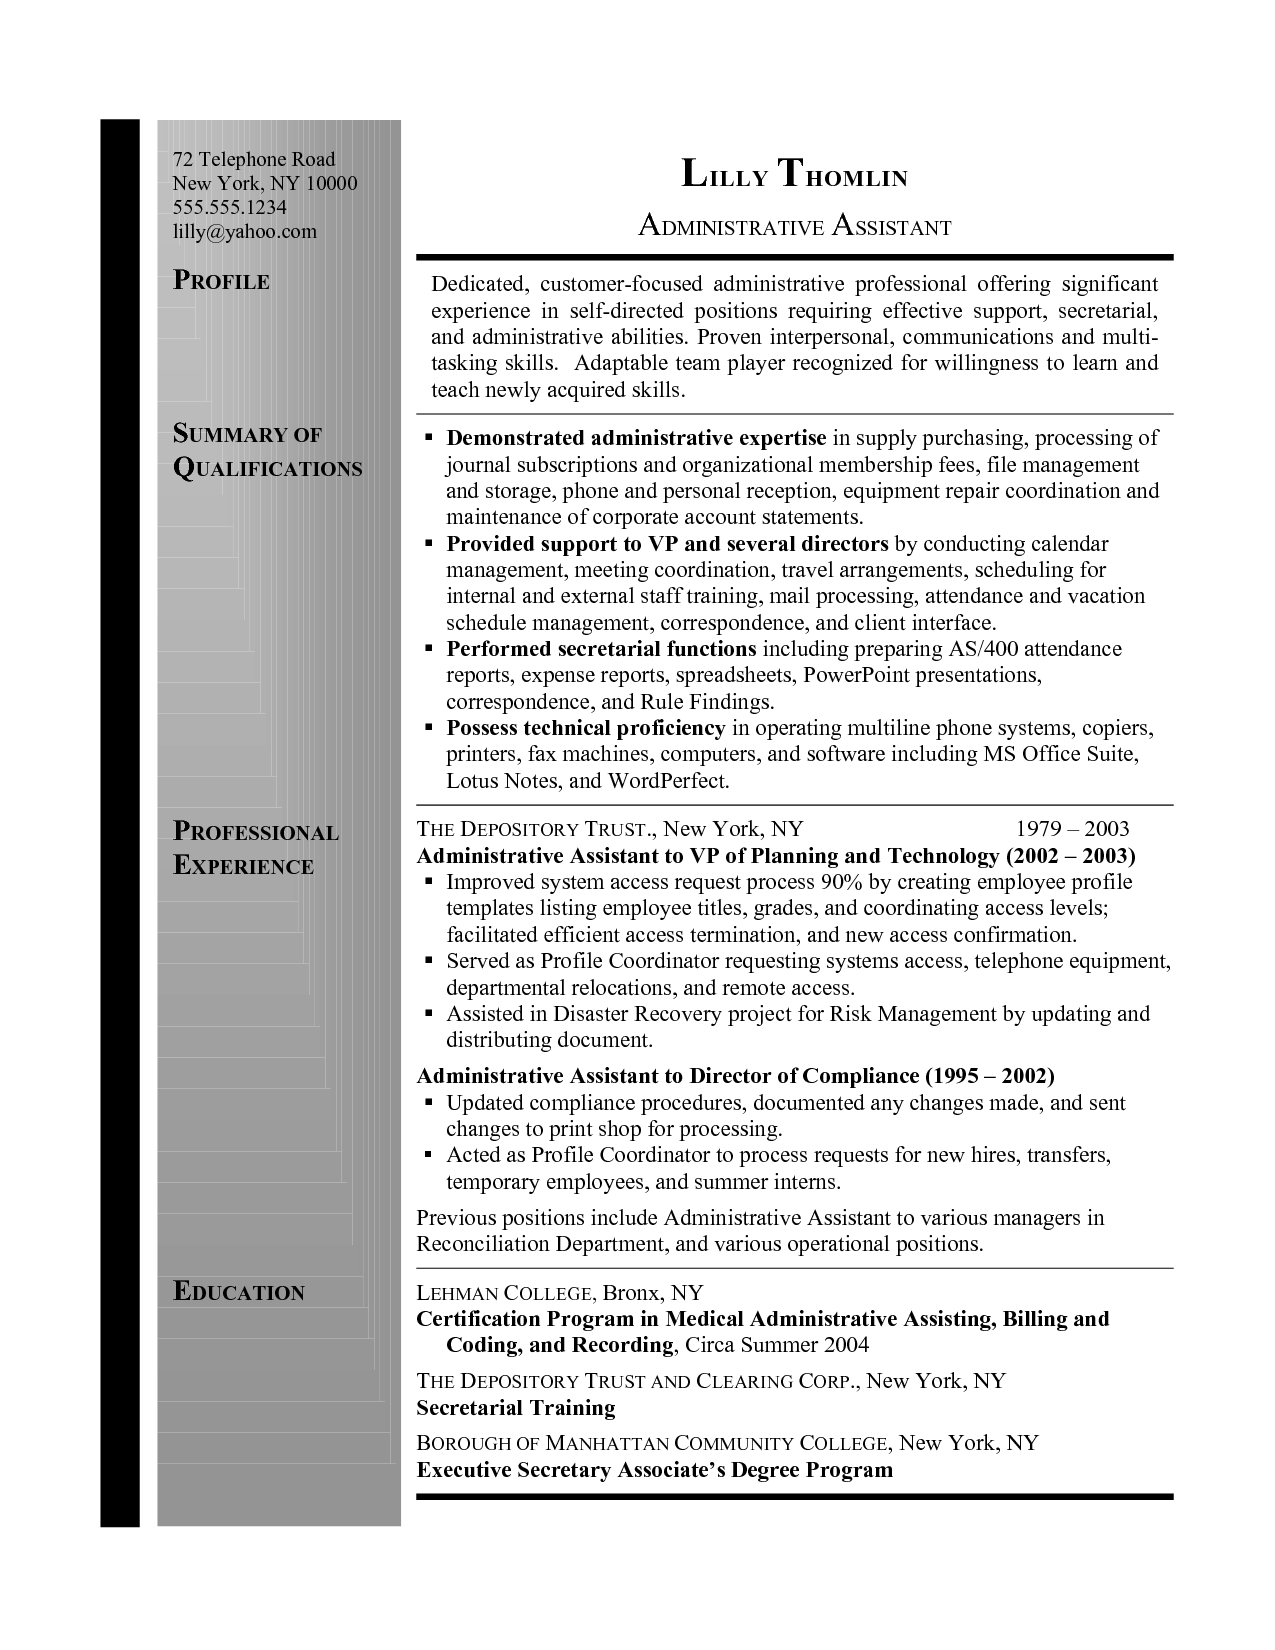 resume summary administrative assistant administrative resume summary administrative assistant